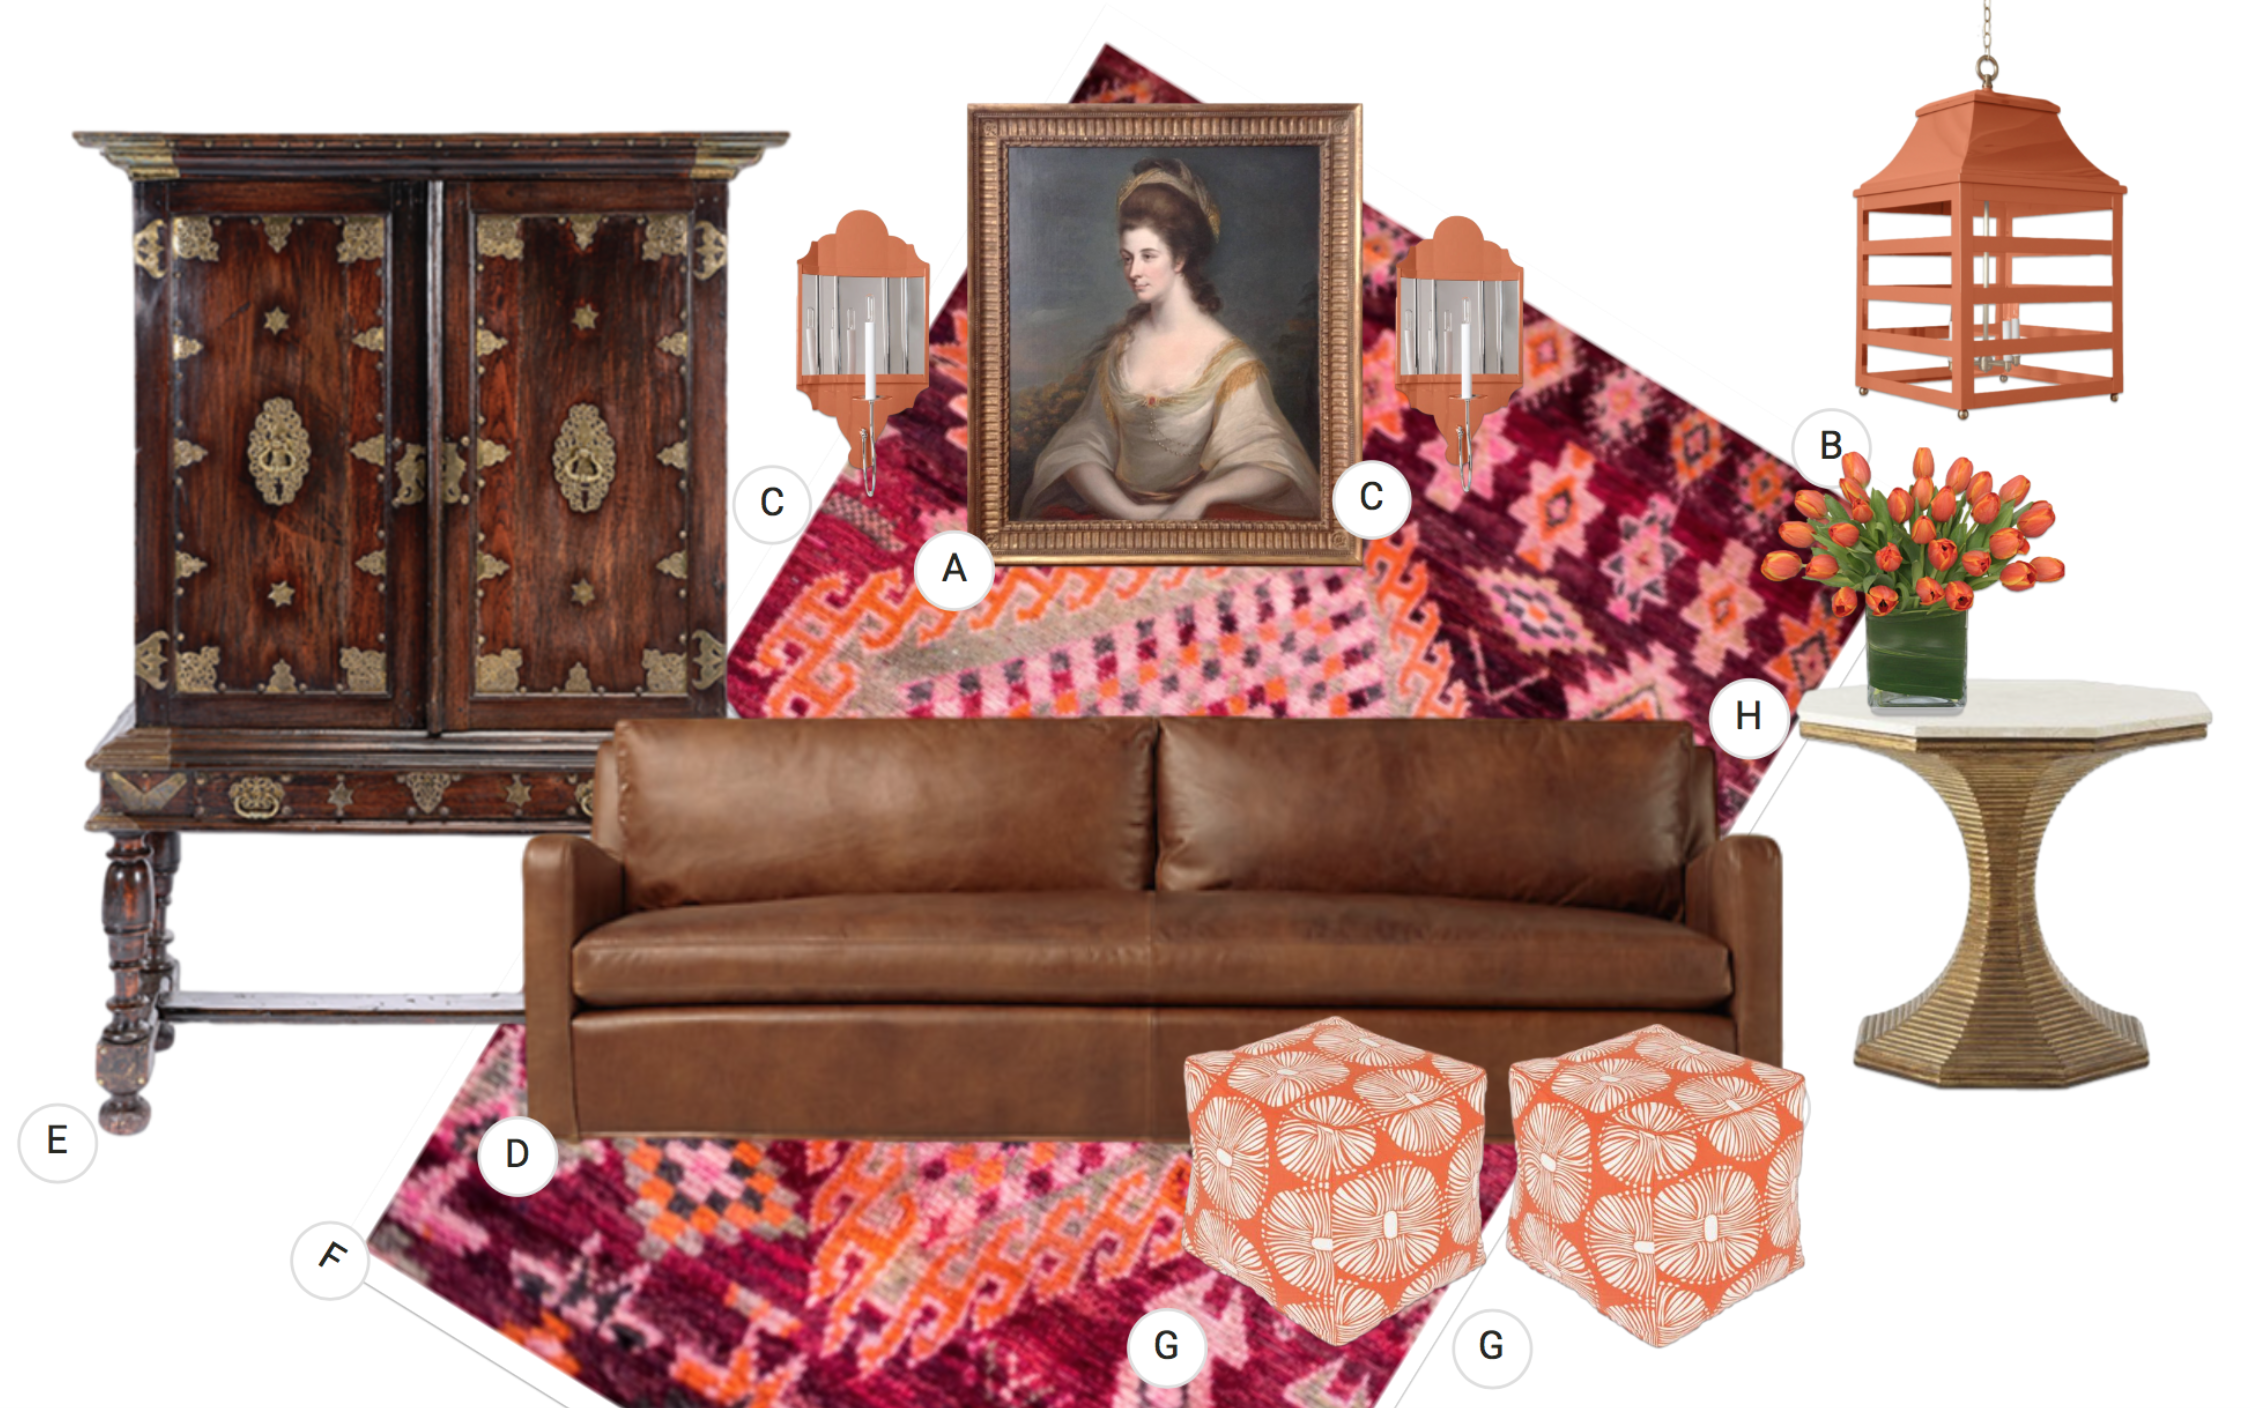 B.  Oomph Saybrook Lantern  C.  Oomph Charleston Sconce  D.  RH Belgian sofa  E.  Portuguese antique cabinet  F.  Coco Carpet vintage carpet  G.  Pouf  H.  Bunny Williams Hourglass table